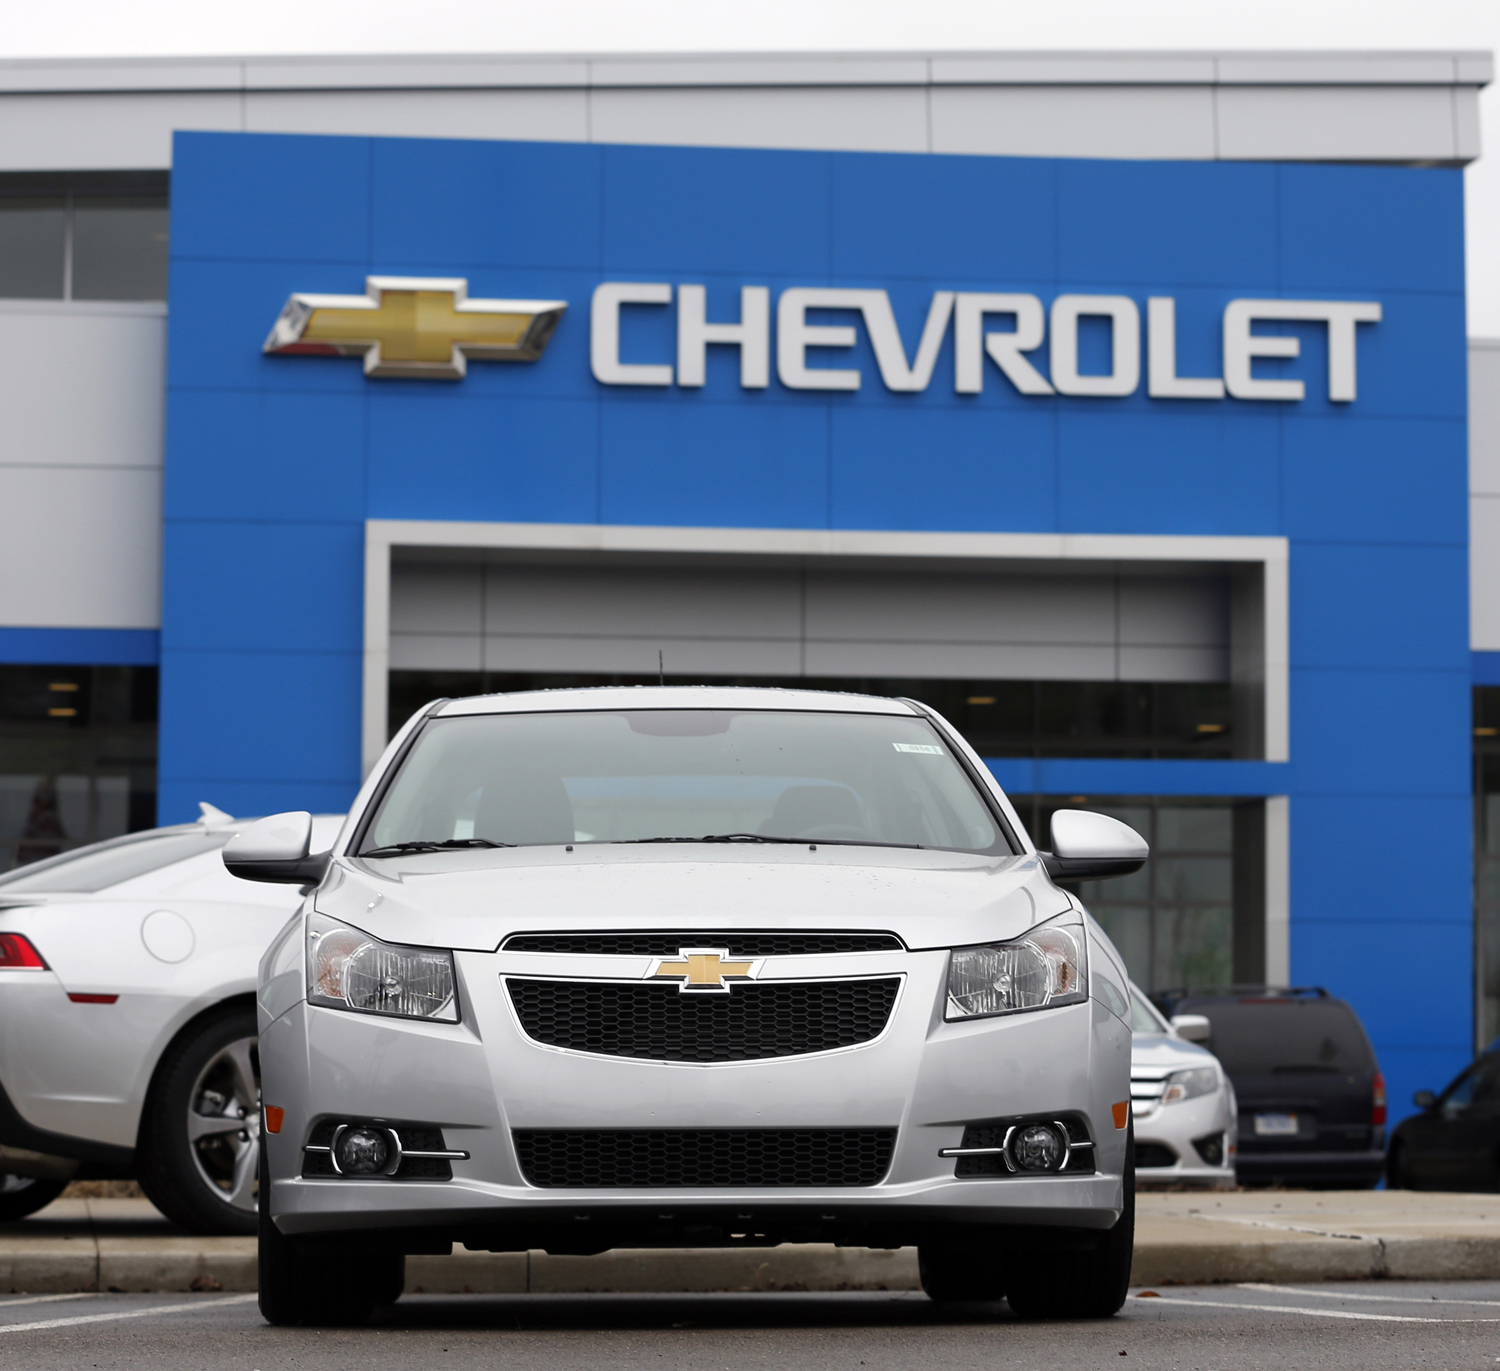 A General Motors Co. 2014 Chevrolet Cruze vehicle sits on the lot at a dealership in Southfield, Michigan, March 28, 2014.